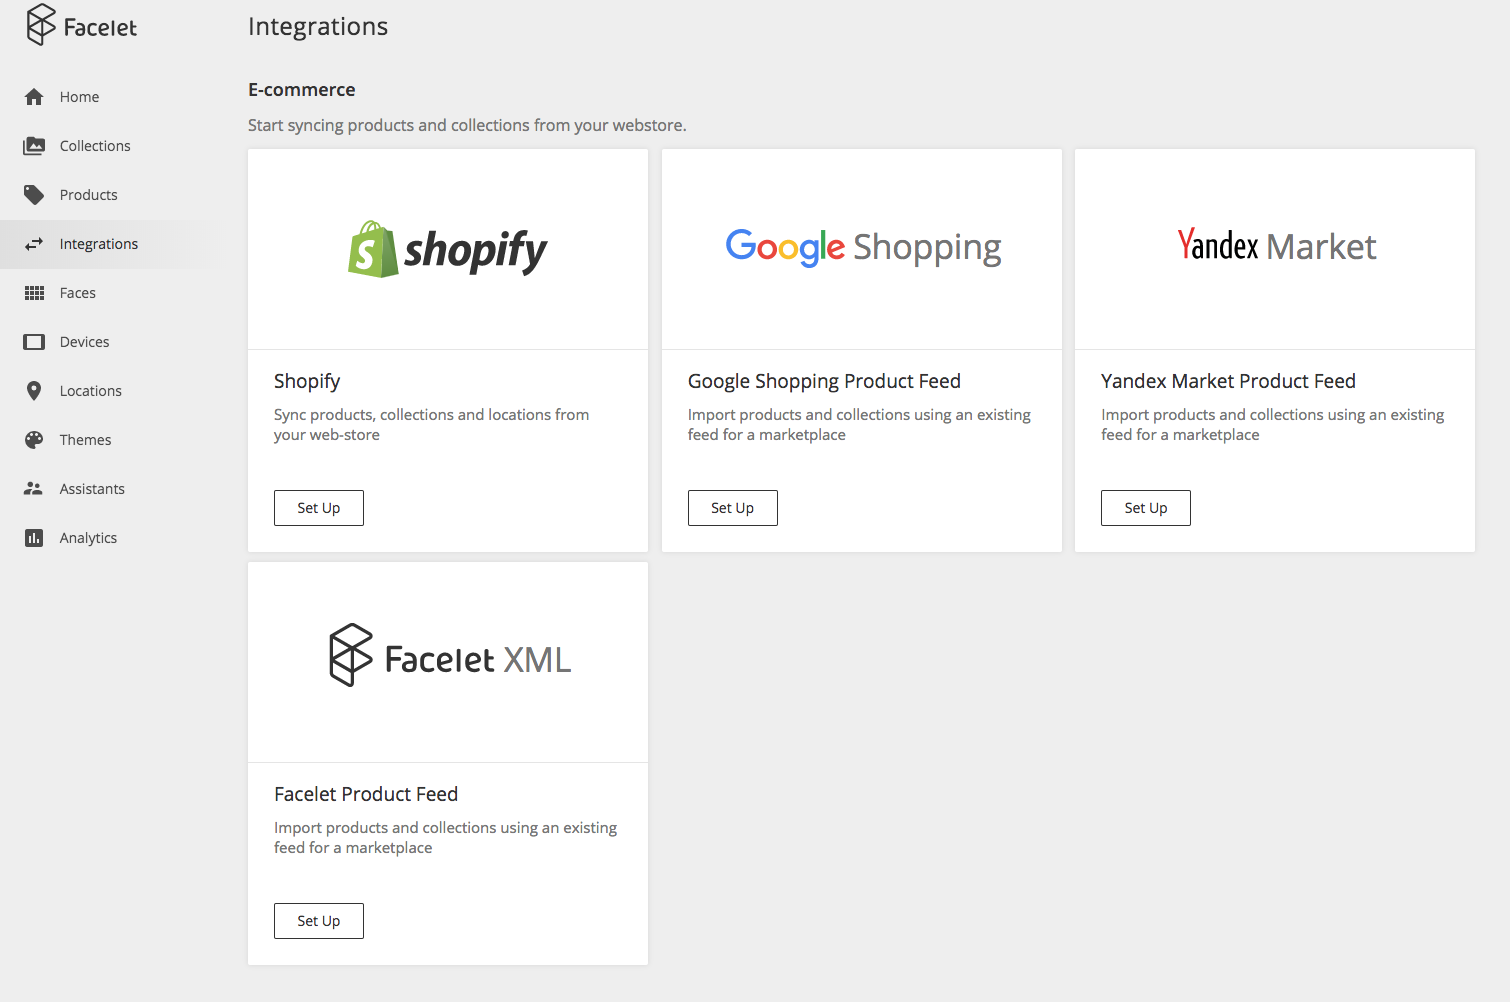 Shopify and Google shopping integration screen